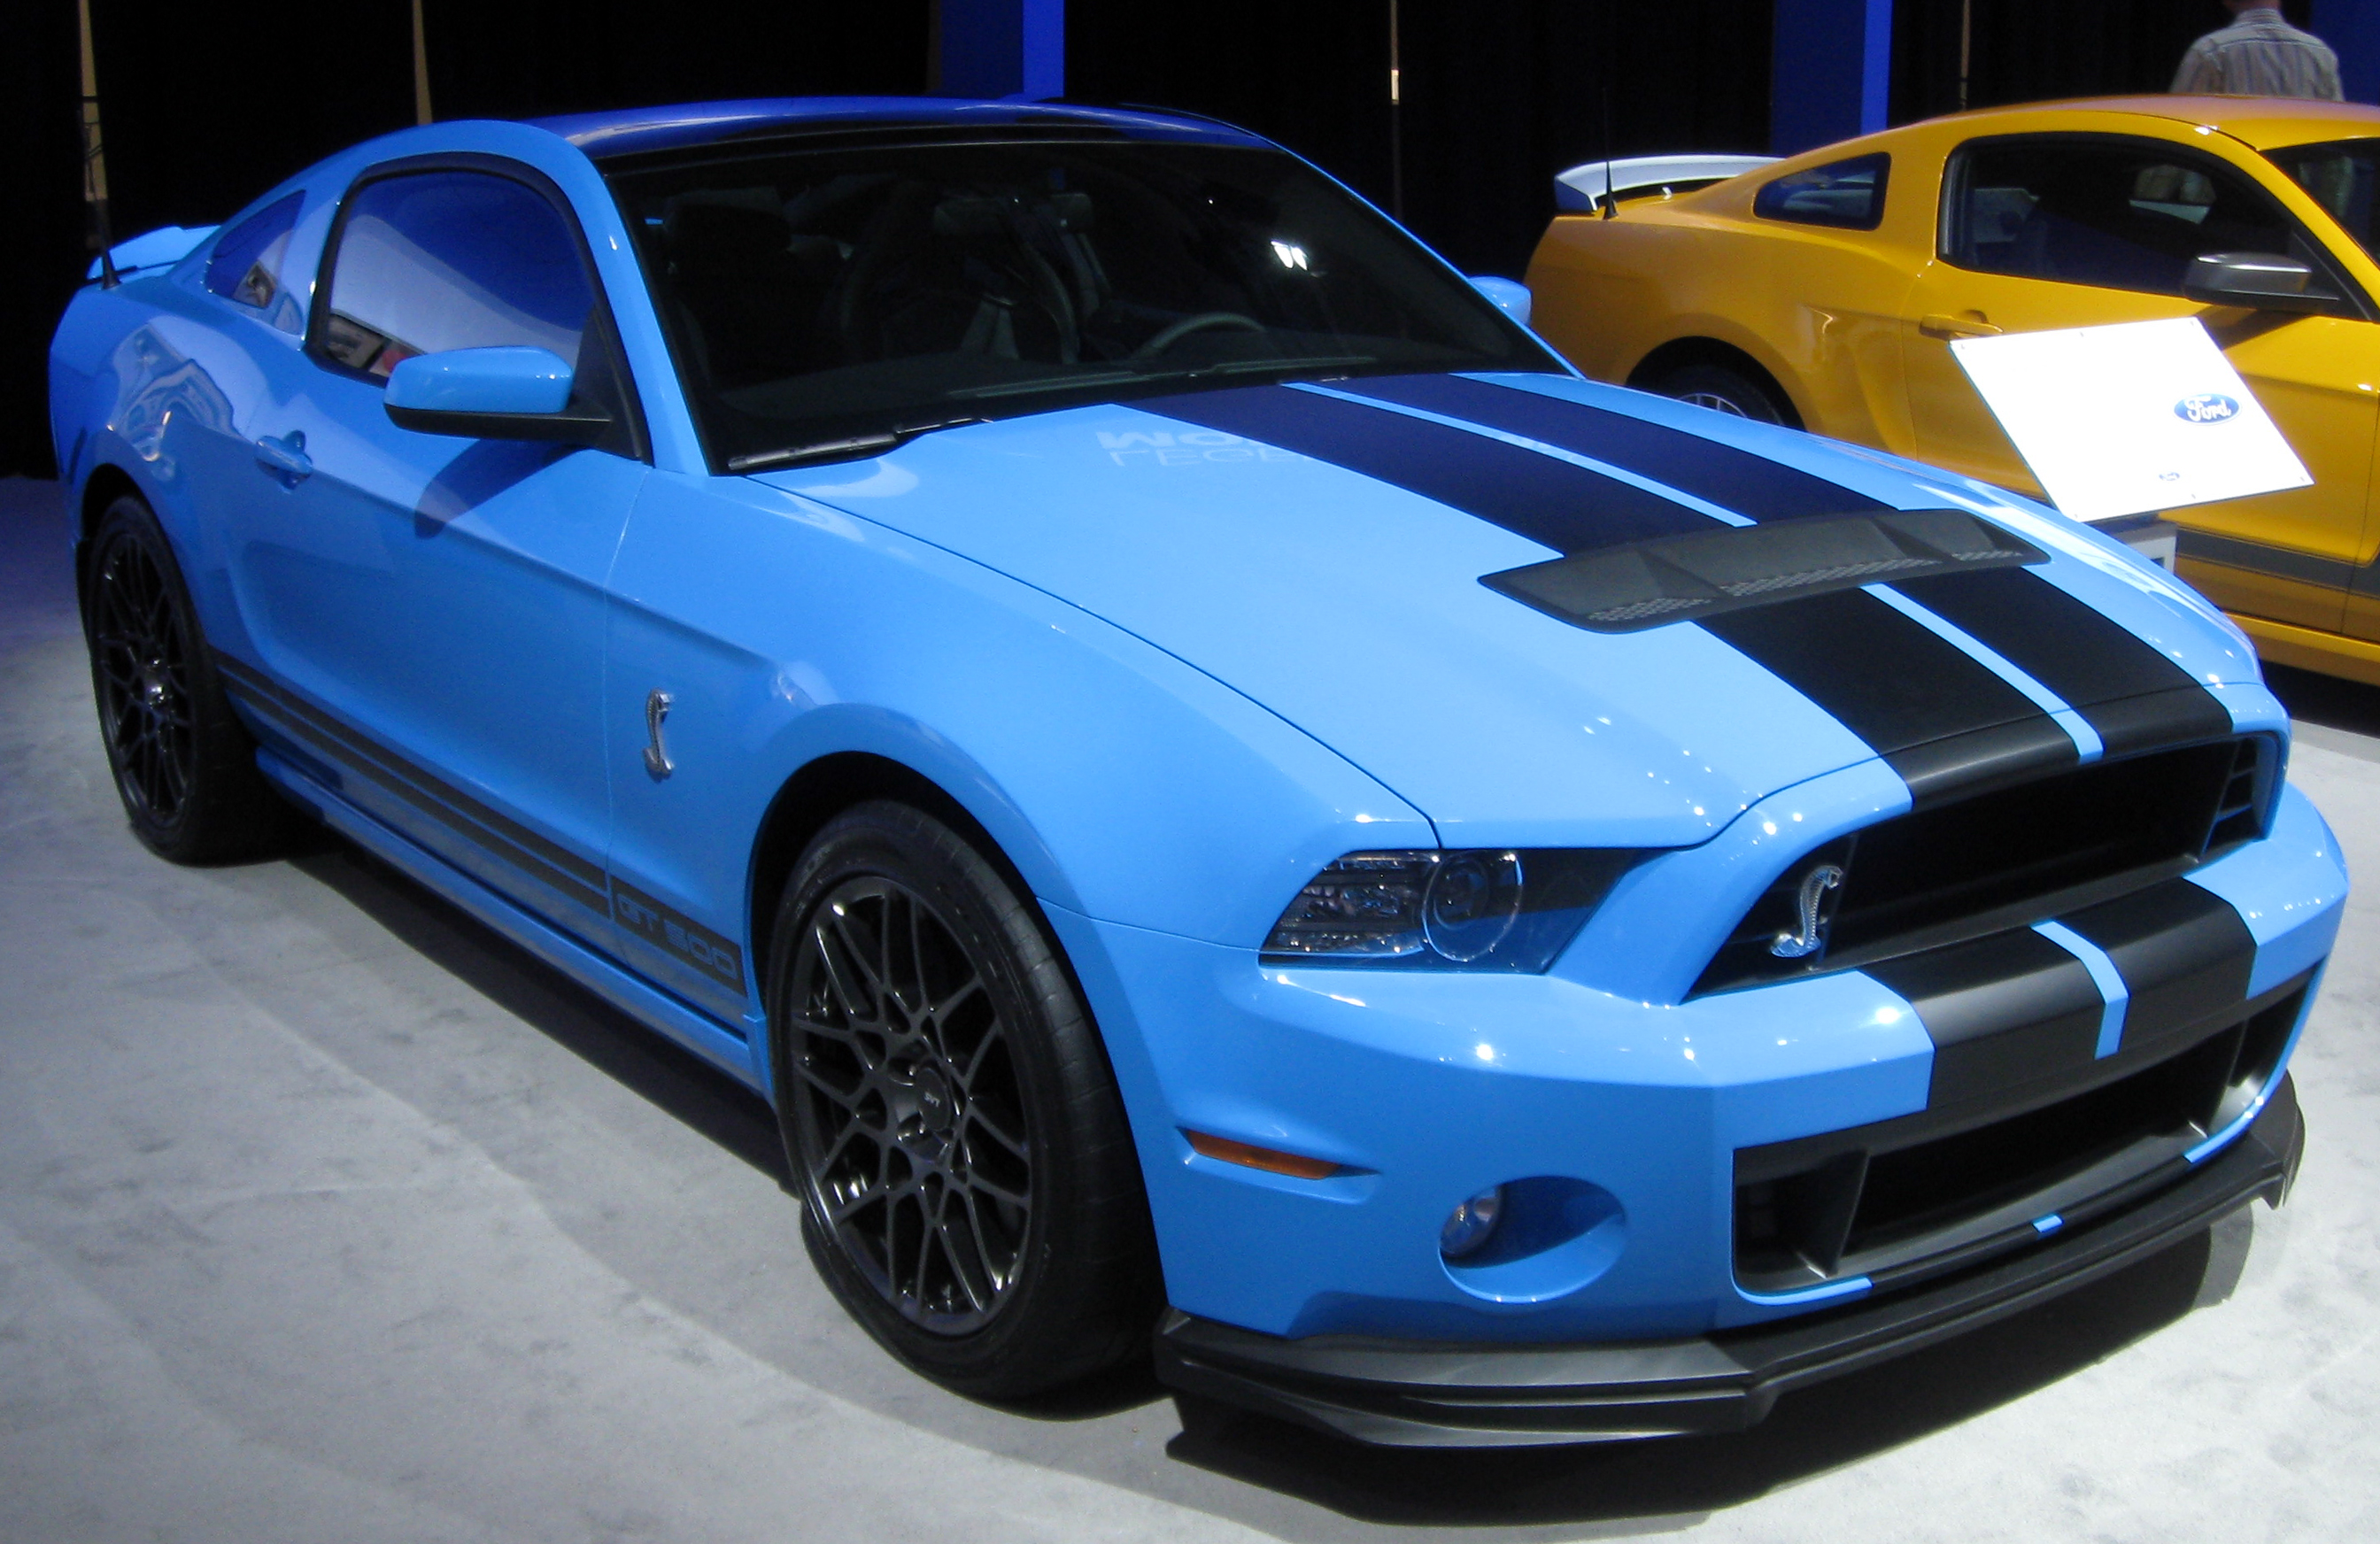 2014 mustang gt500 wiki autos post. Black Bedroom Furniture Sets. Home Design Ideas